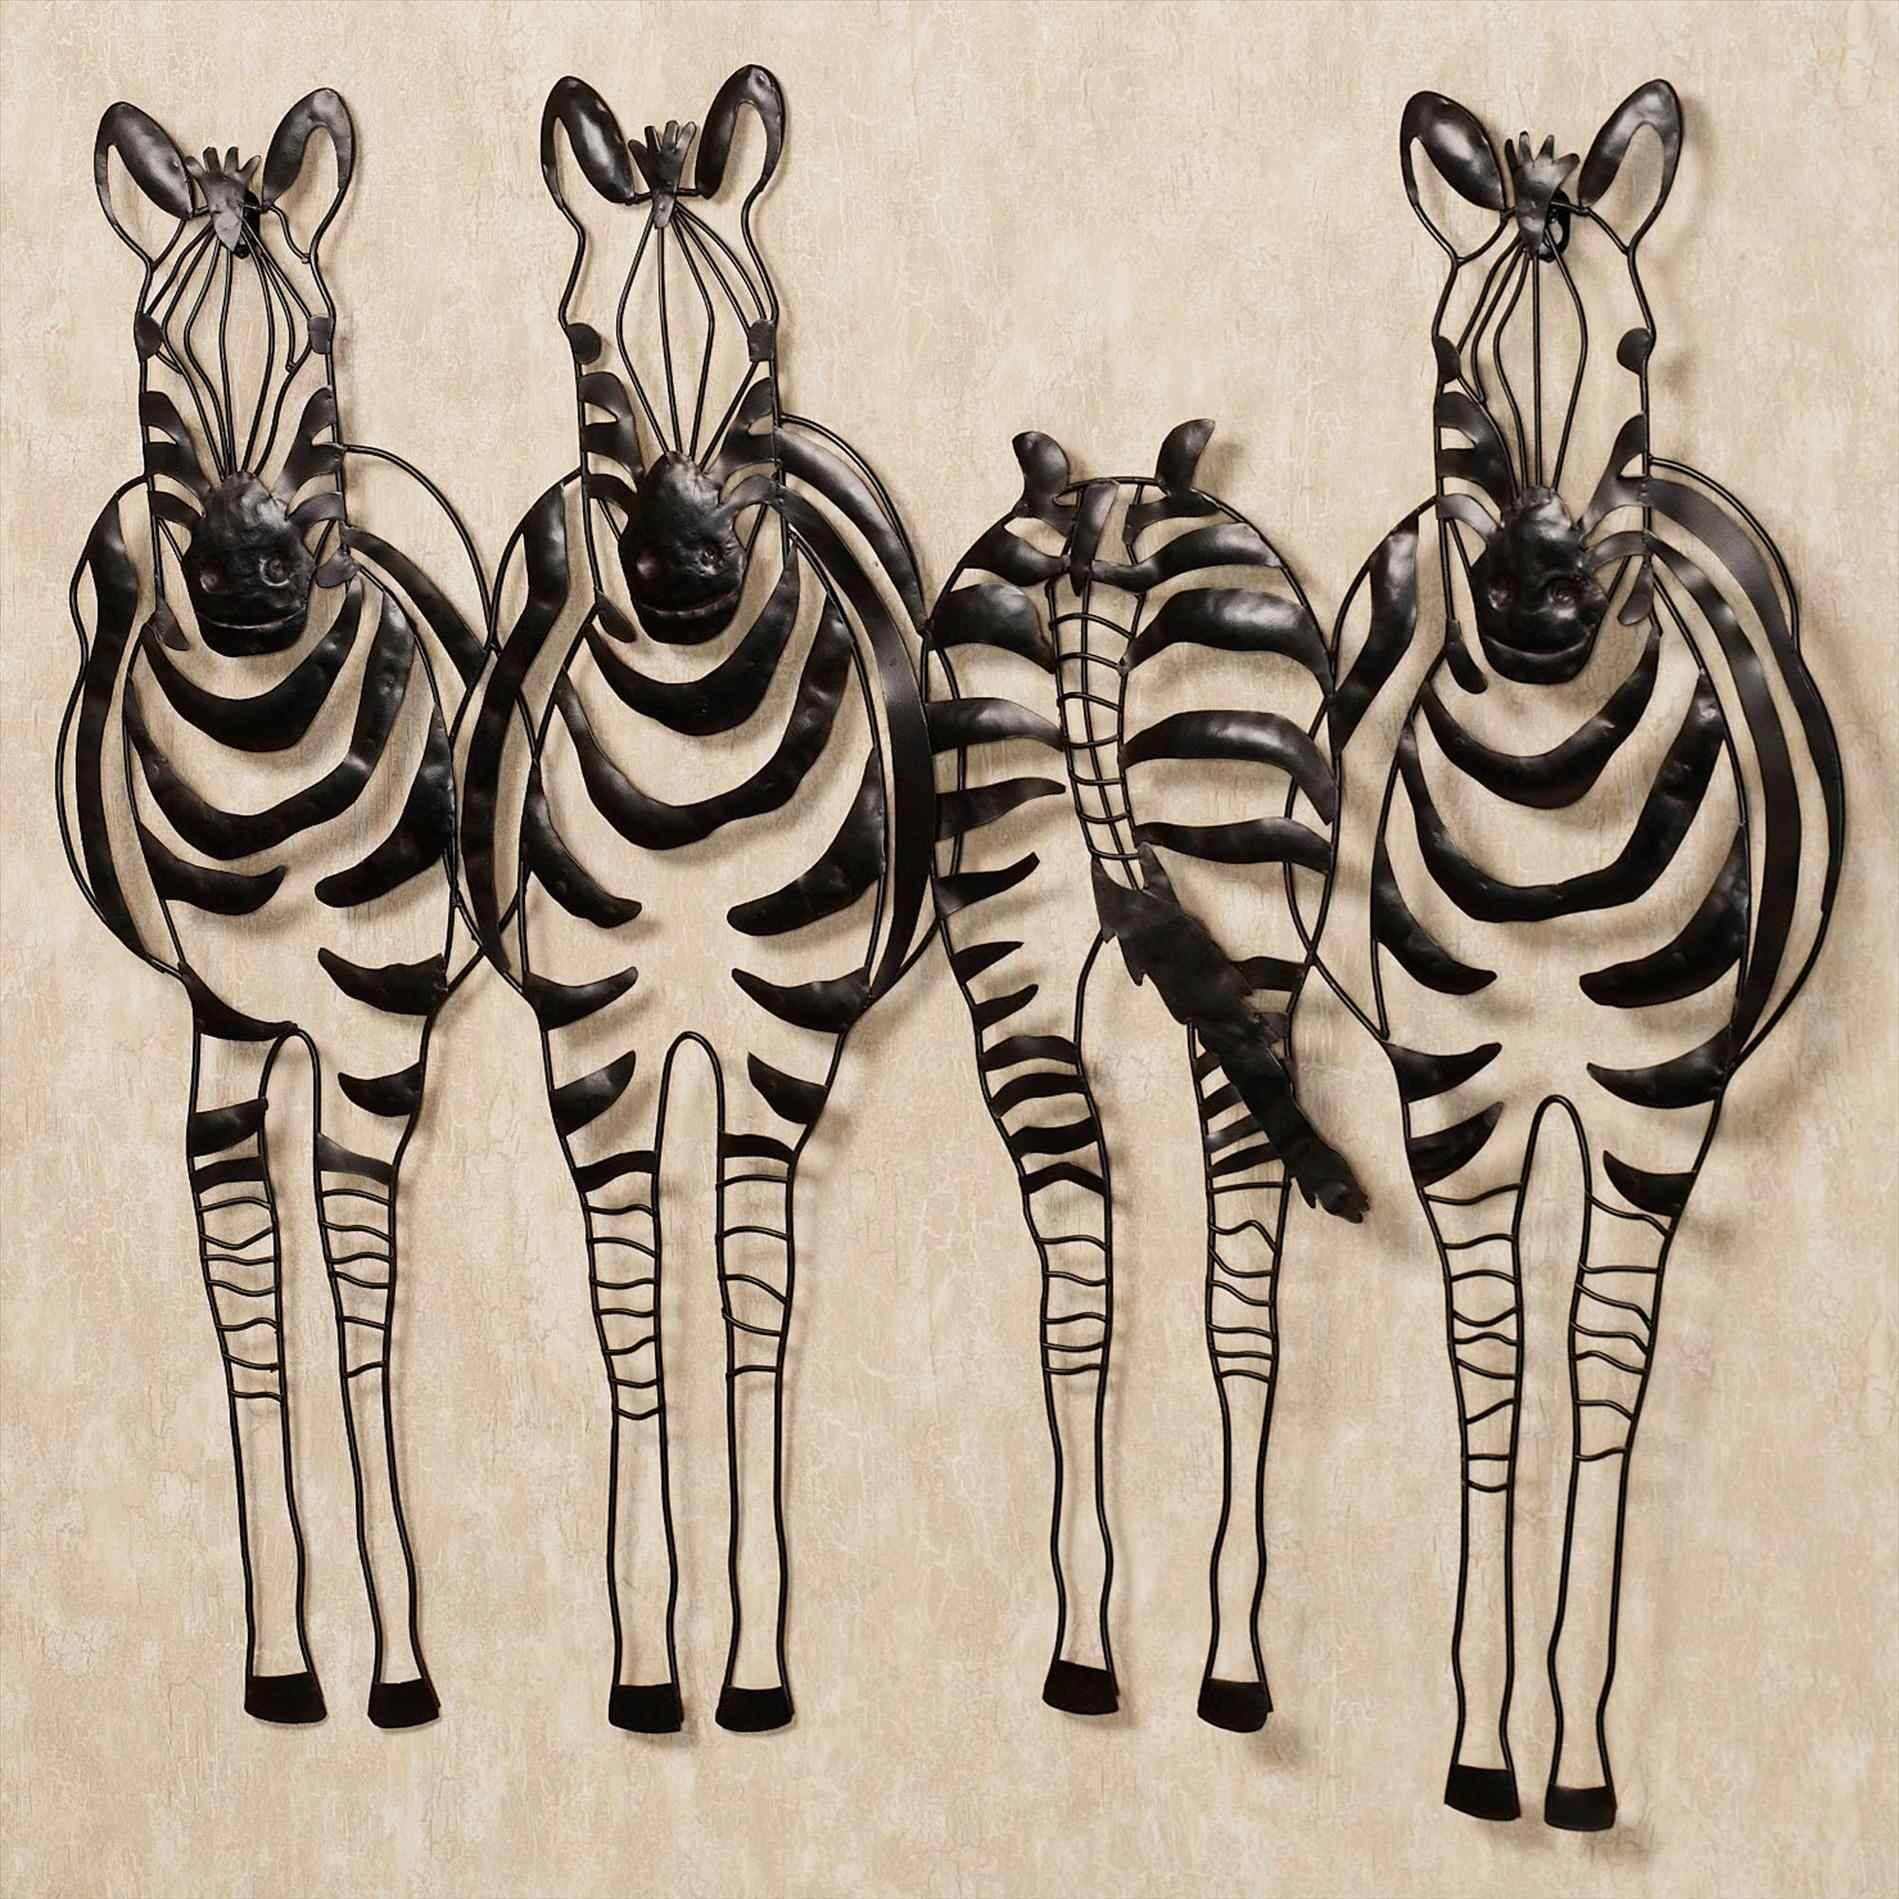 Safari Metal Wall Art Animals And African Home Decor Touch Of With Regard To Most Current Metal Wall Art Animals (View 2 of 20)